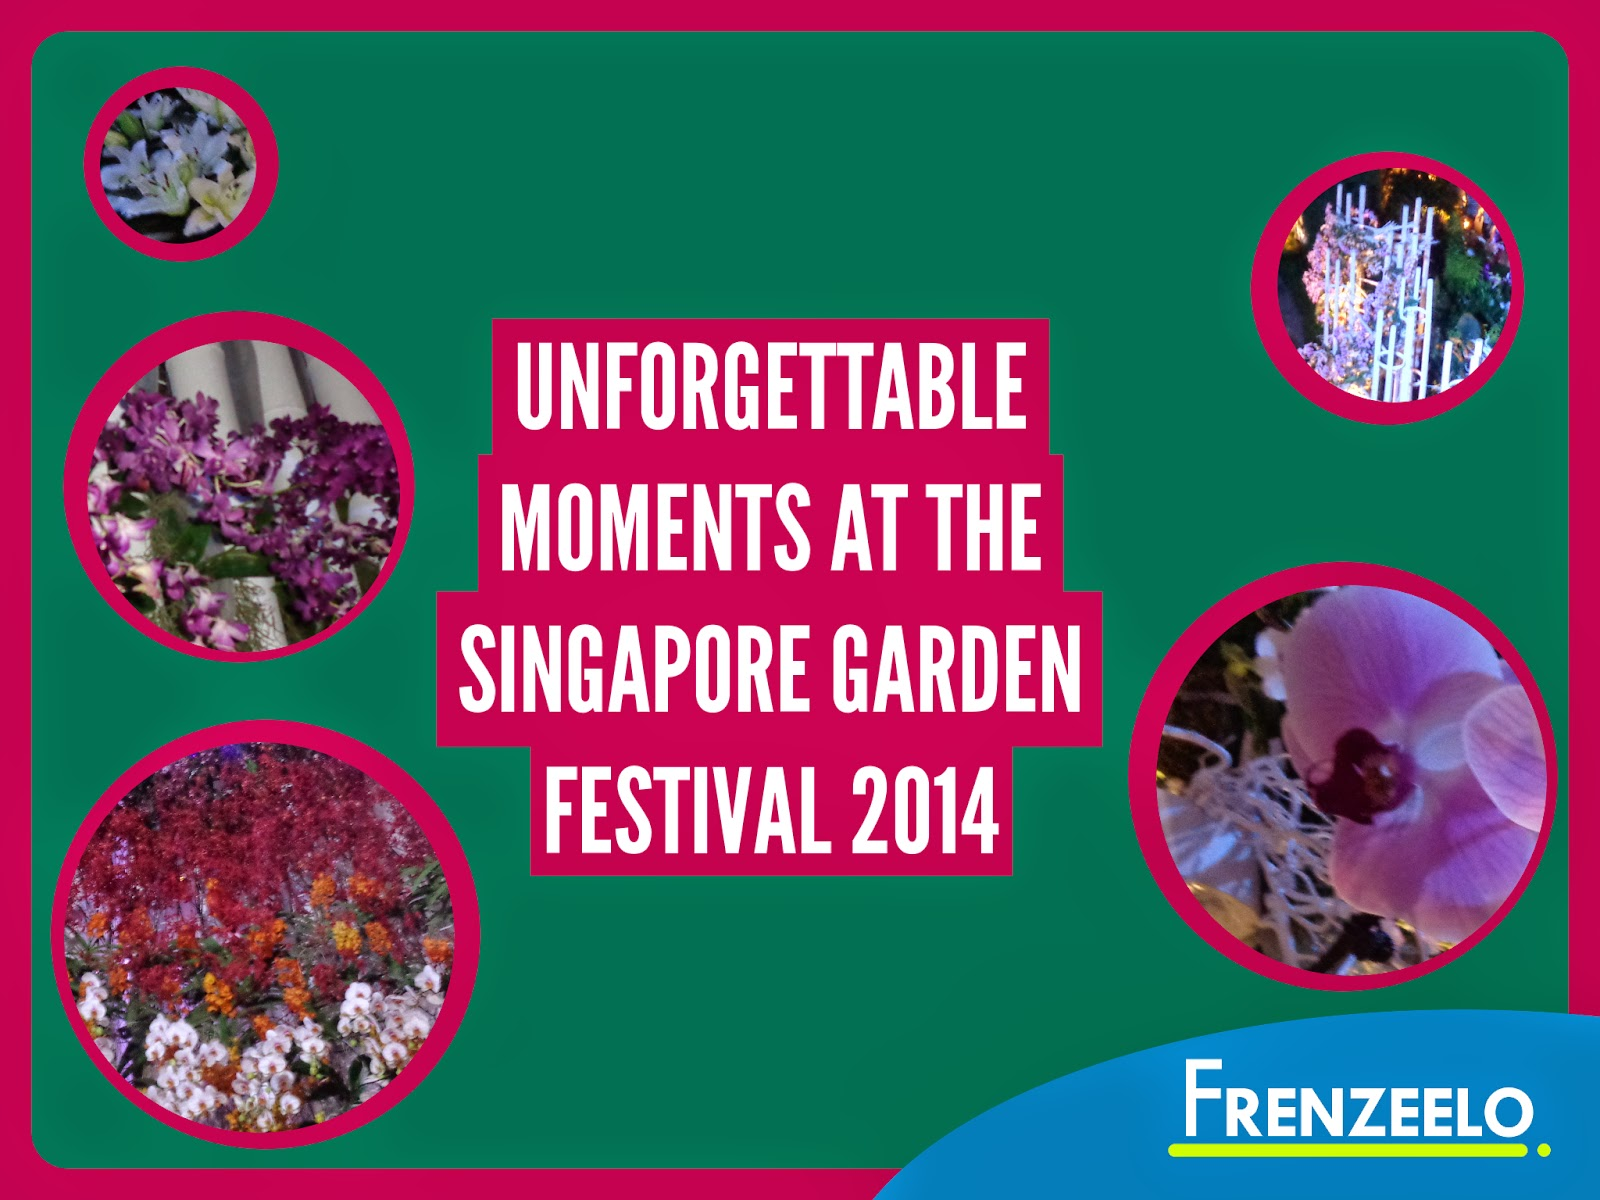 Garden By The Bay August 2014 frenzeelo: unforgettable moments at the singapore garden festival 2014